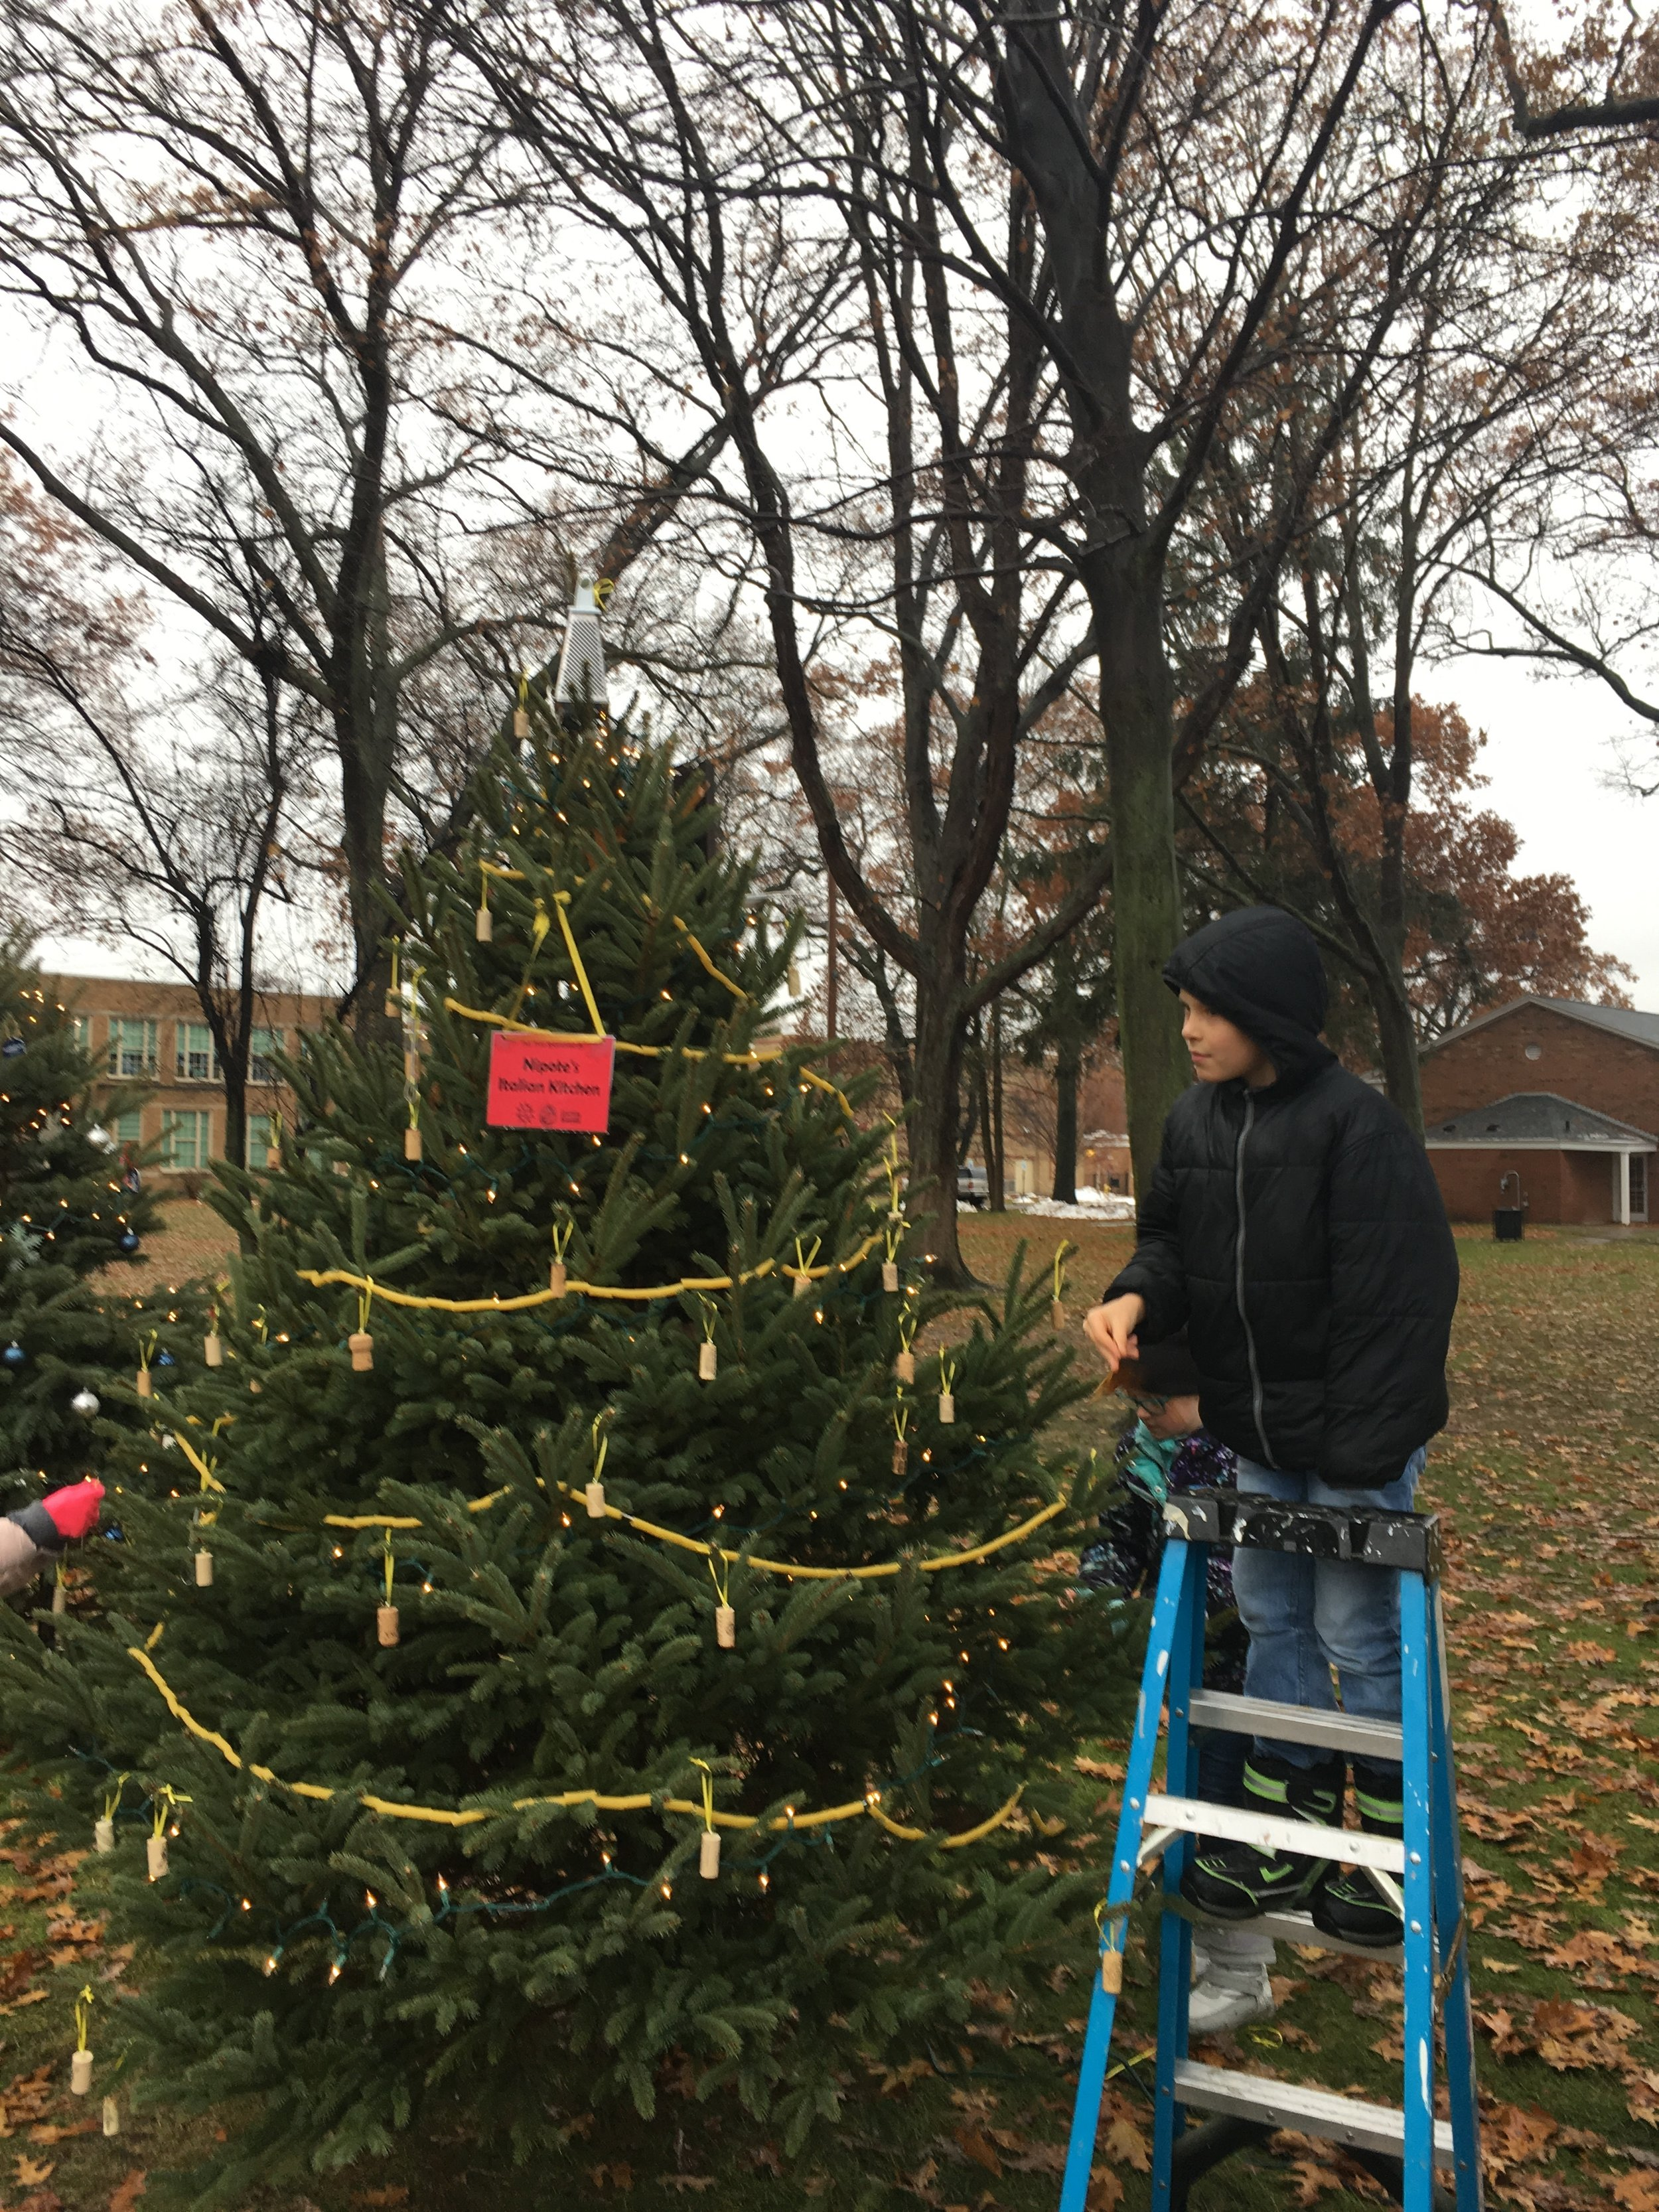 Jeffrey Jr. is helping to trim the tree that we sponsored for the Circle of Trees.